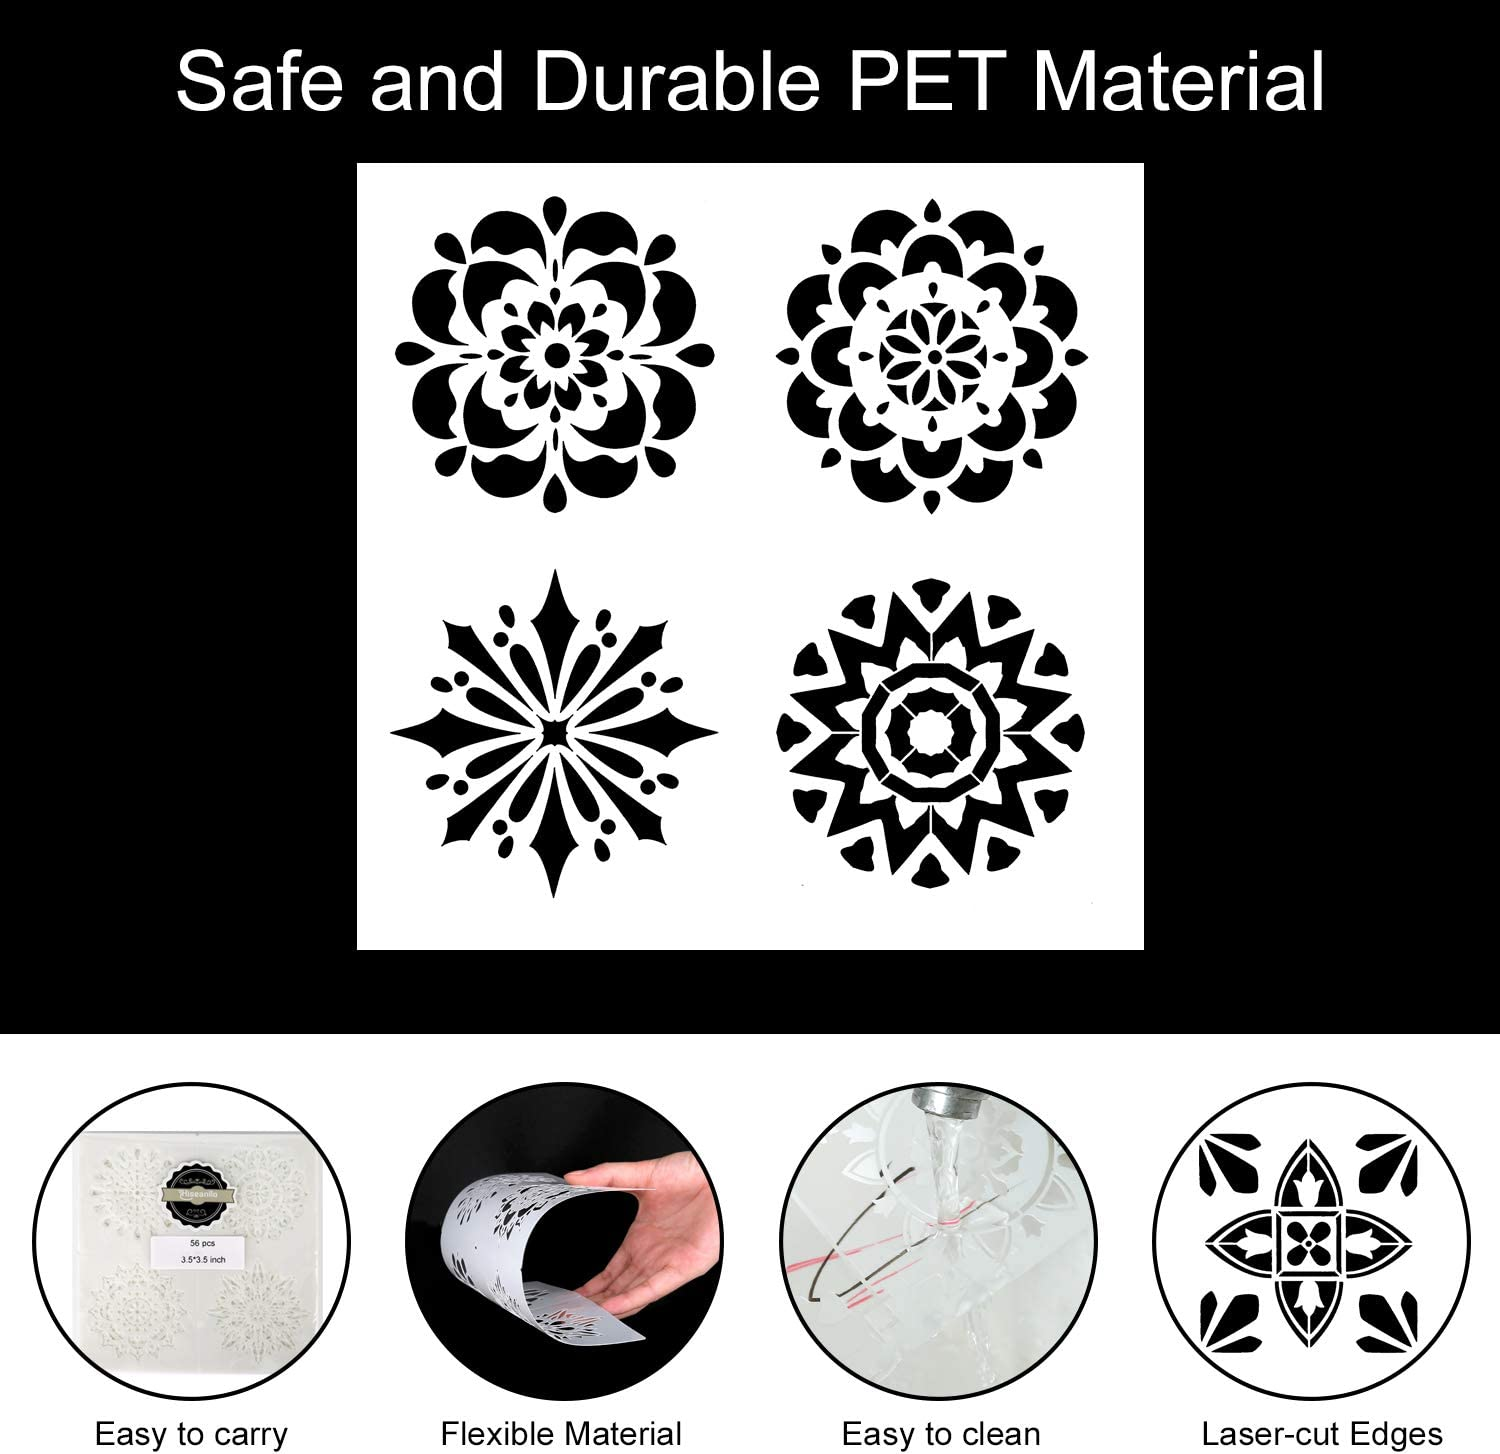 Hiseanllo 56 Patterns Mandala Dot Painting Templates Stencils Reusable Painting Dotting Tools Template for Drawing on Wood DIY Stone Furniture Floor Tiles Walls Art Projects 3.5 X 3.5inch